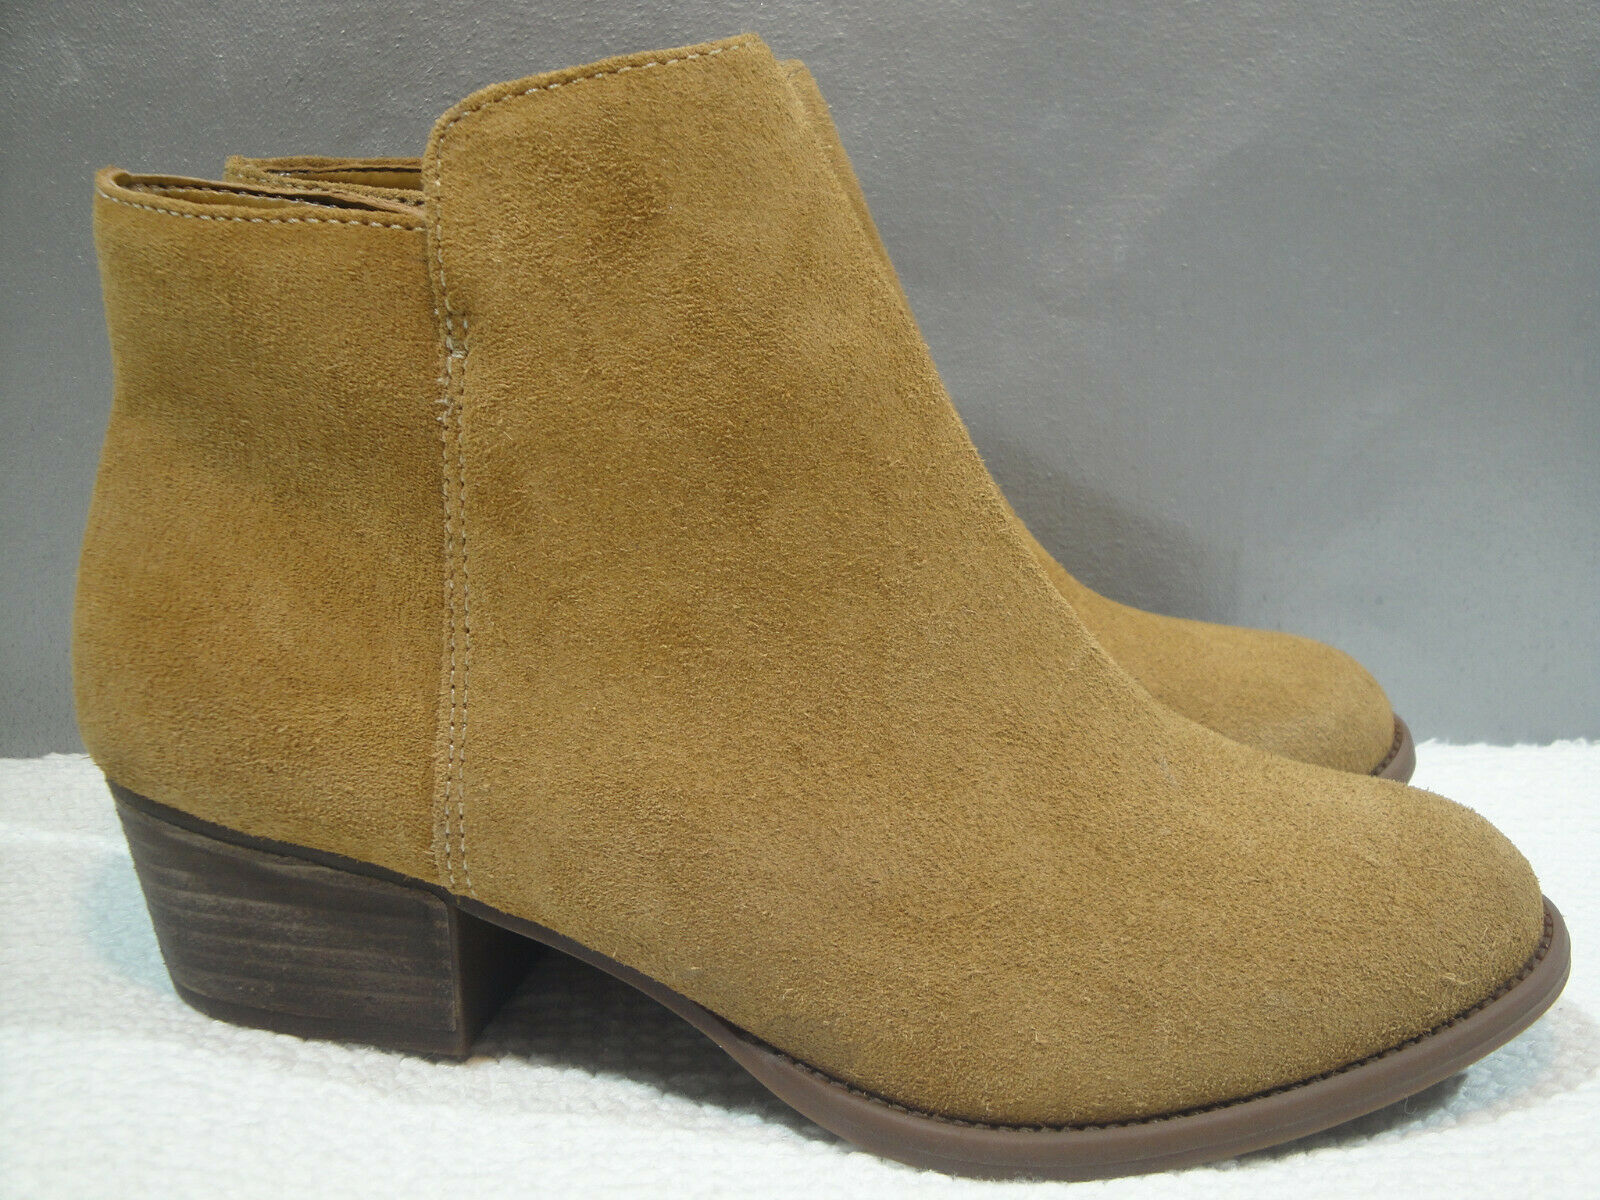 WOMENS NEW 8.5 JESSICA SIMPSON TAN SUEDE LEATHER WESTERN COWBOY ZIP ANKLE BOOTS